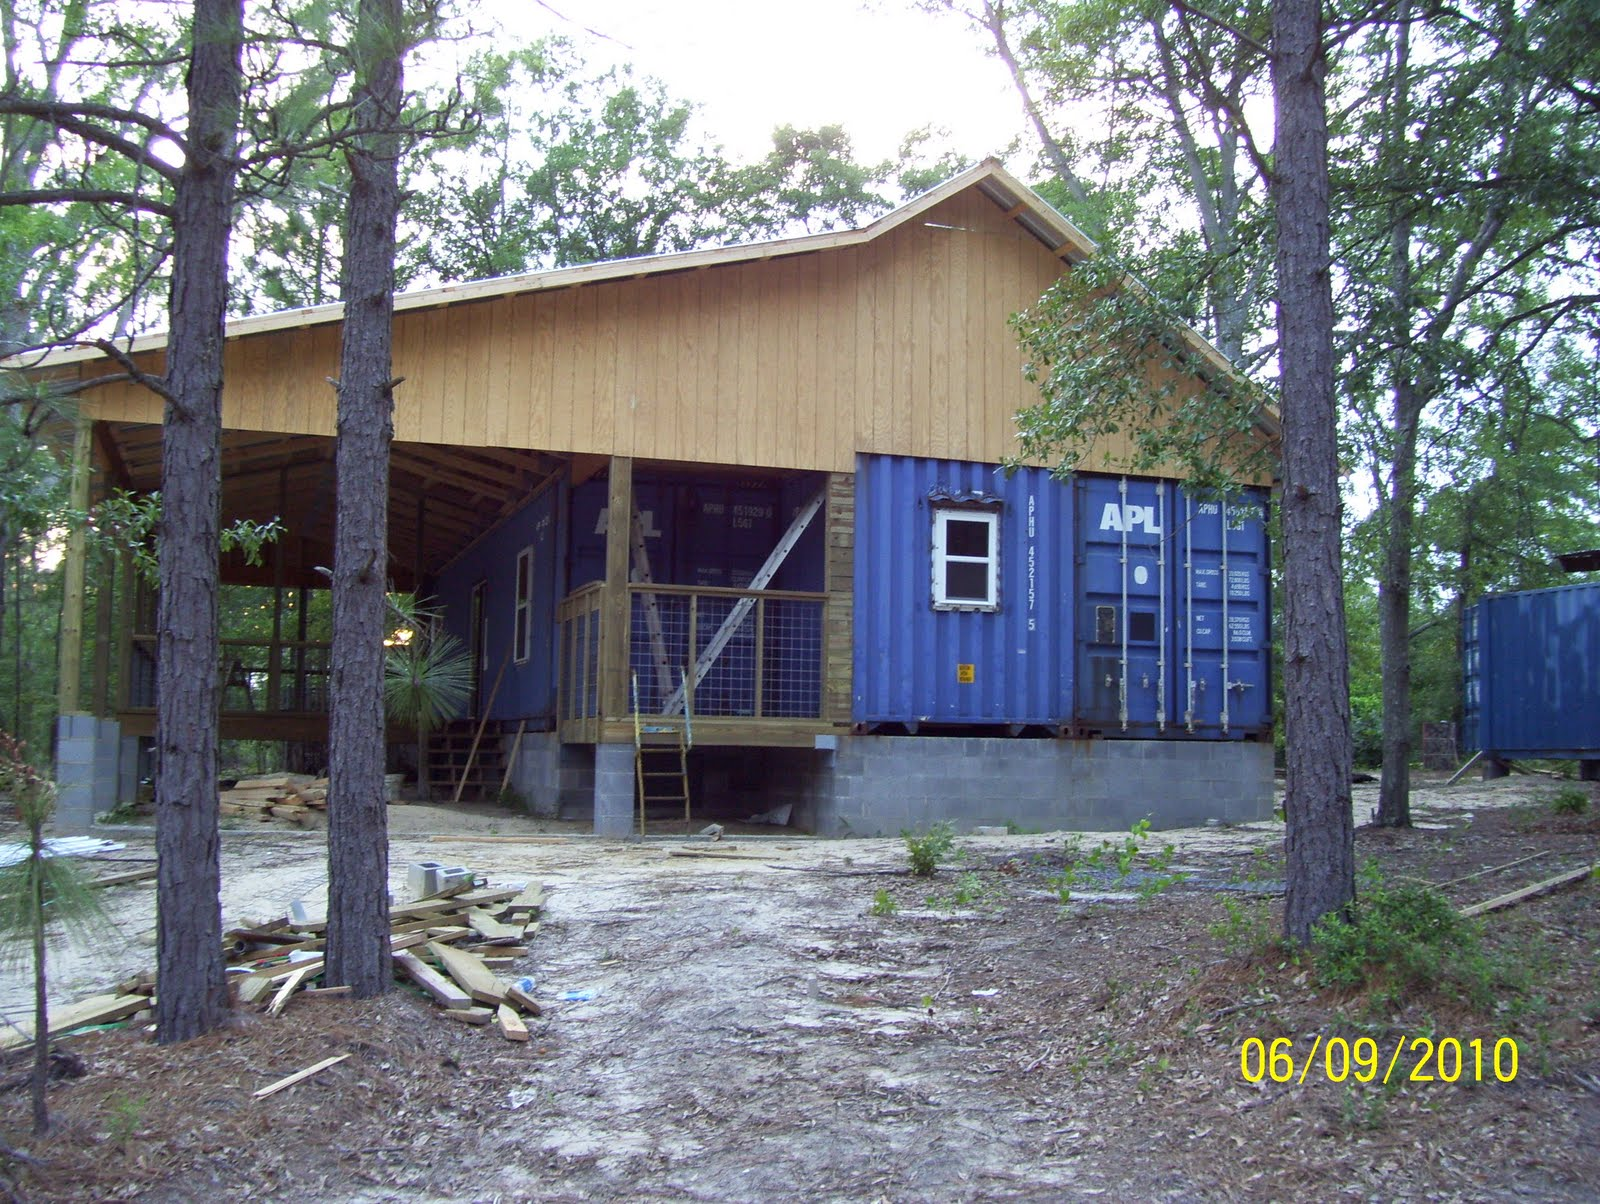 Sense and simplicity shipping container homes 6 Shipping container home builders